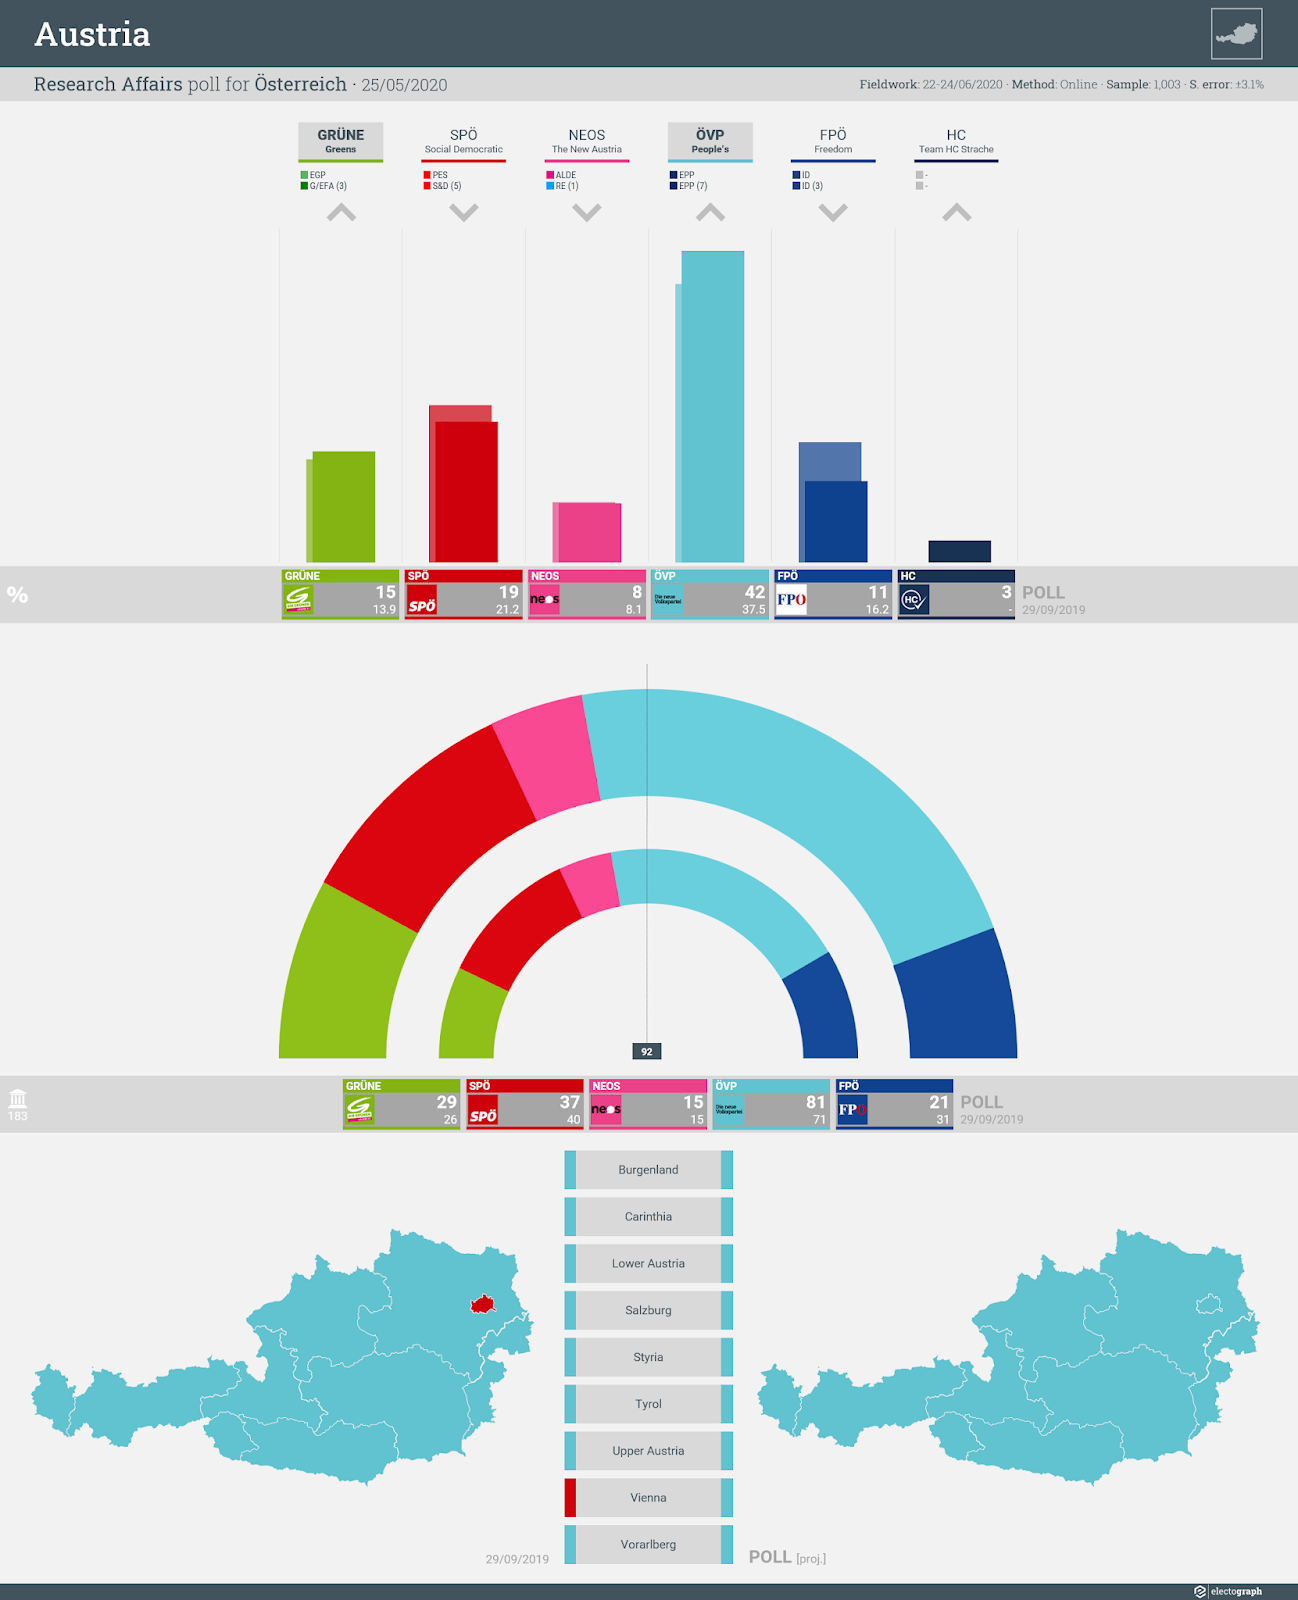 AUSTRIA: Research Affairs poll chart for Österreich, 25 June 2020